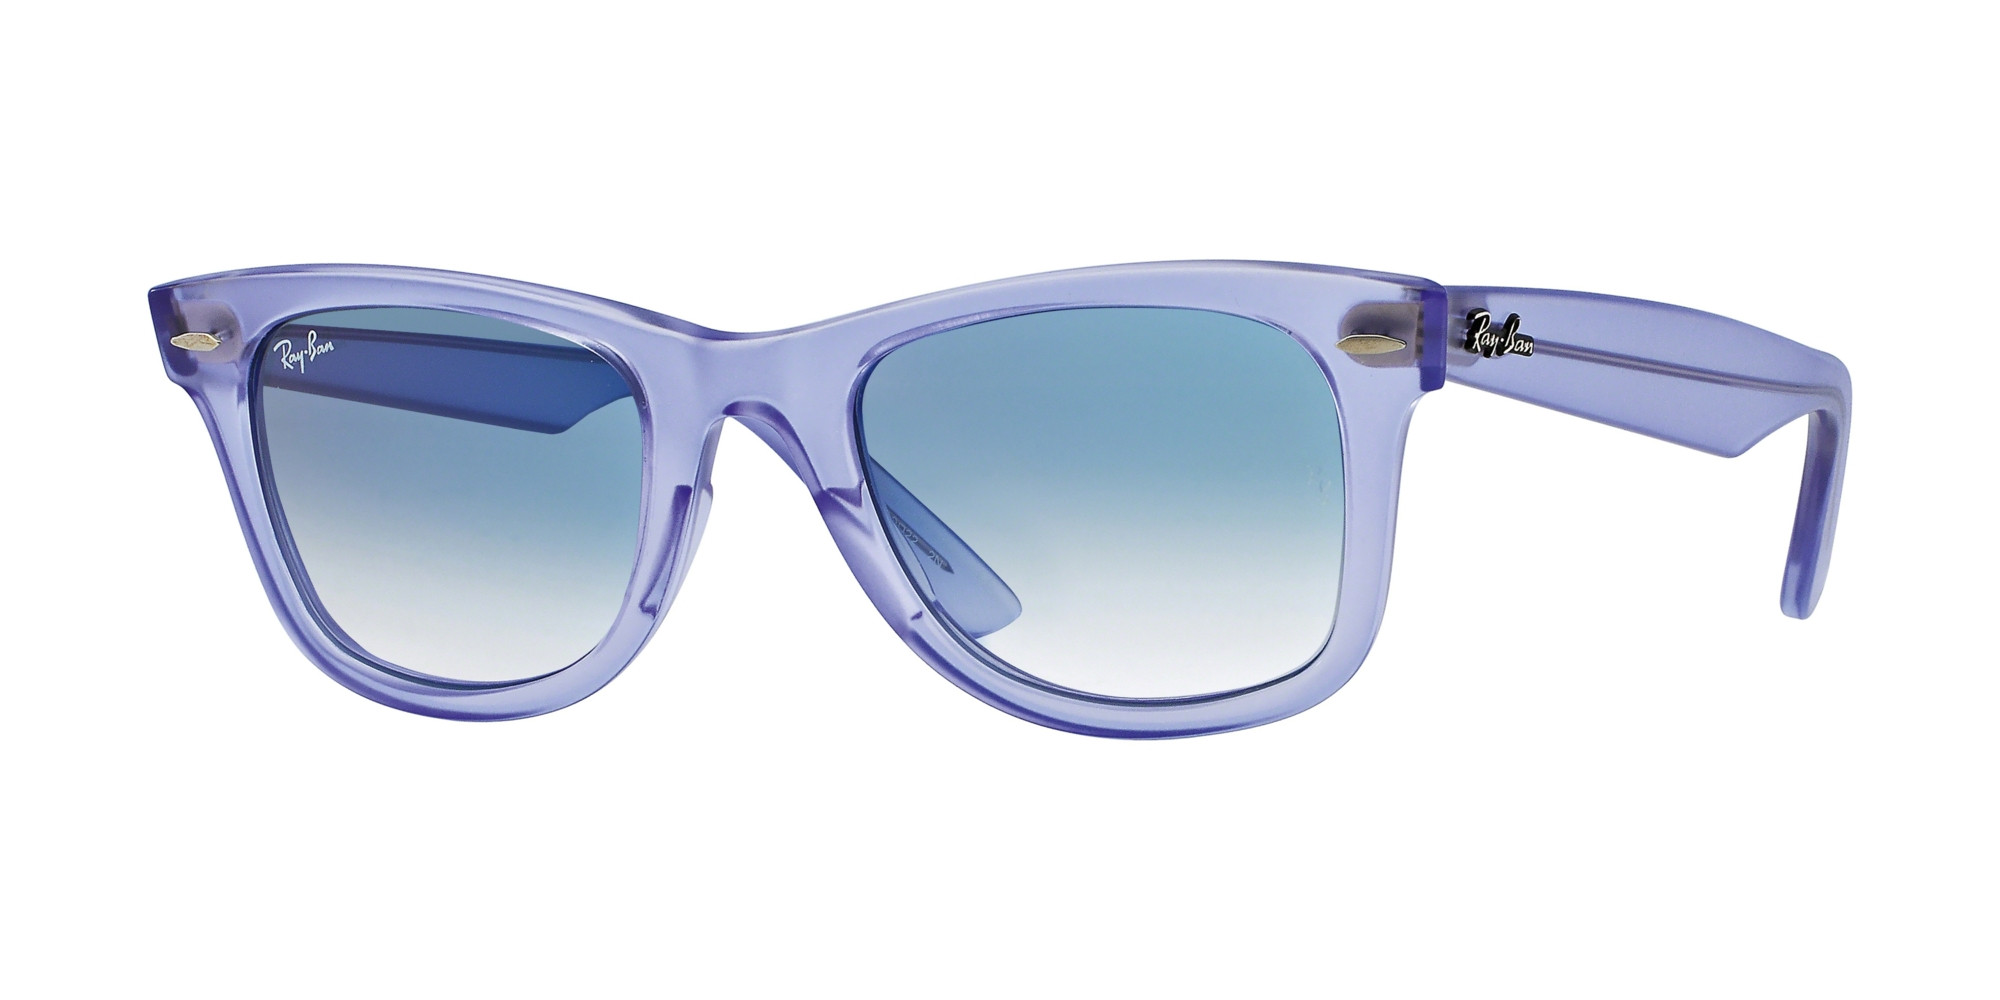 Ray-Ban Model: RB 2140 ORIGINAL WAYFARER, Colour Code: 60603F, Frame Colour: Demi gloss lilac